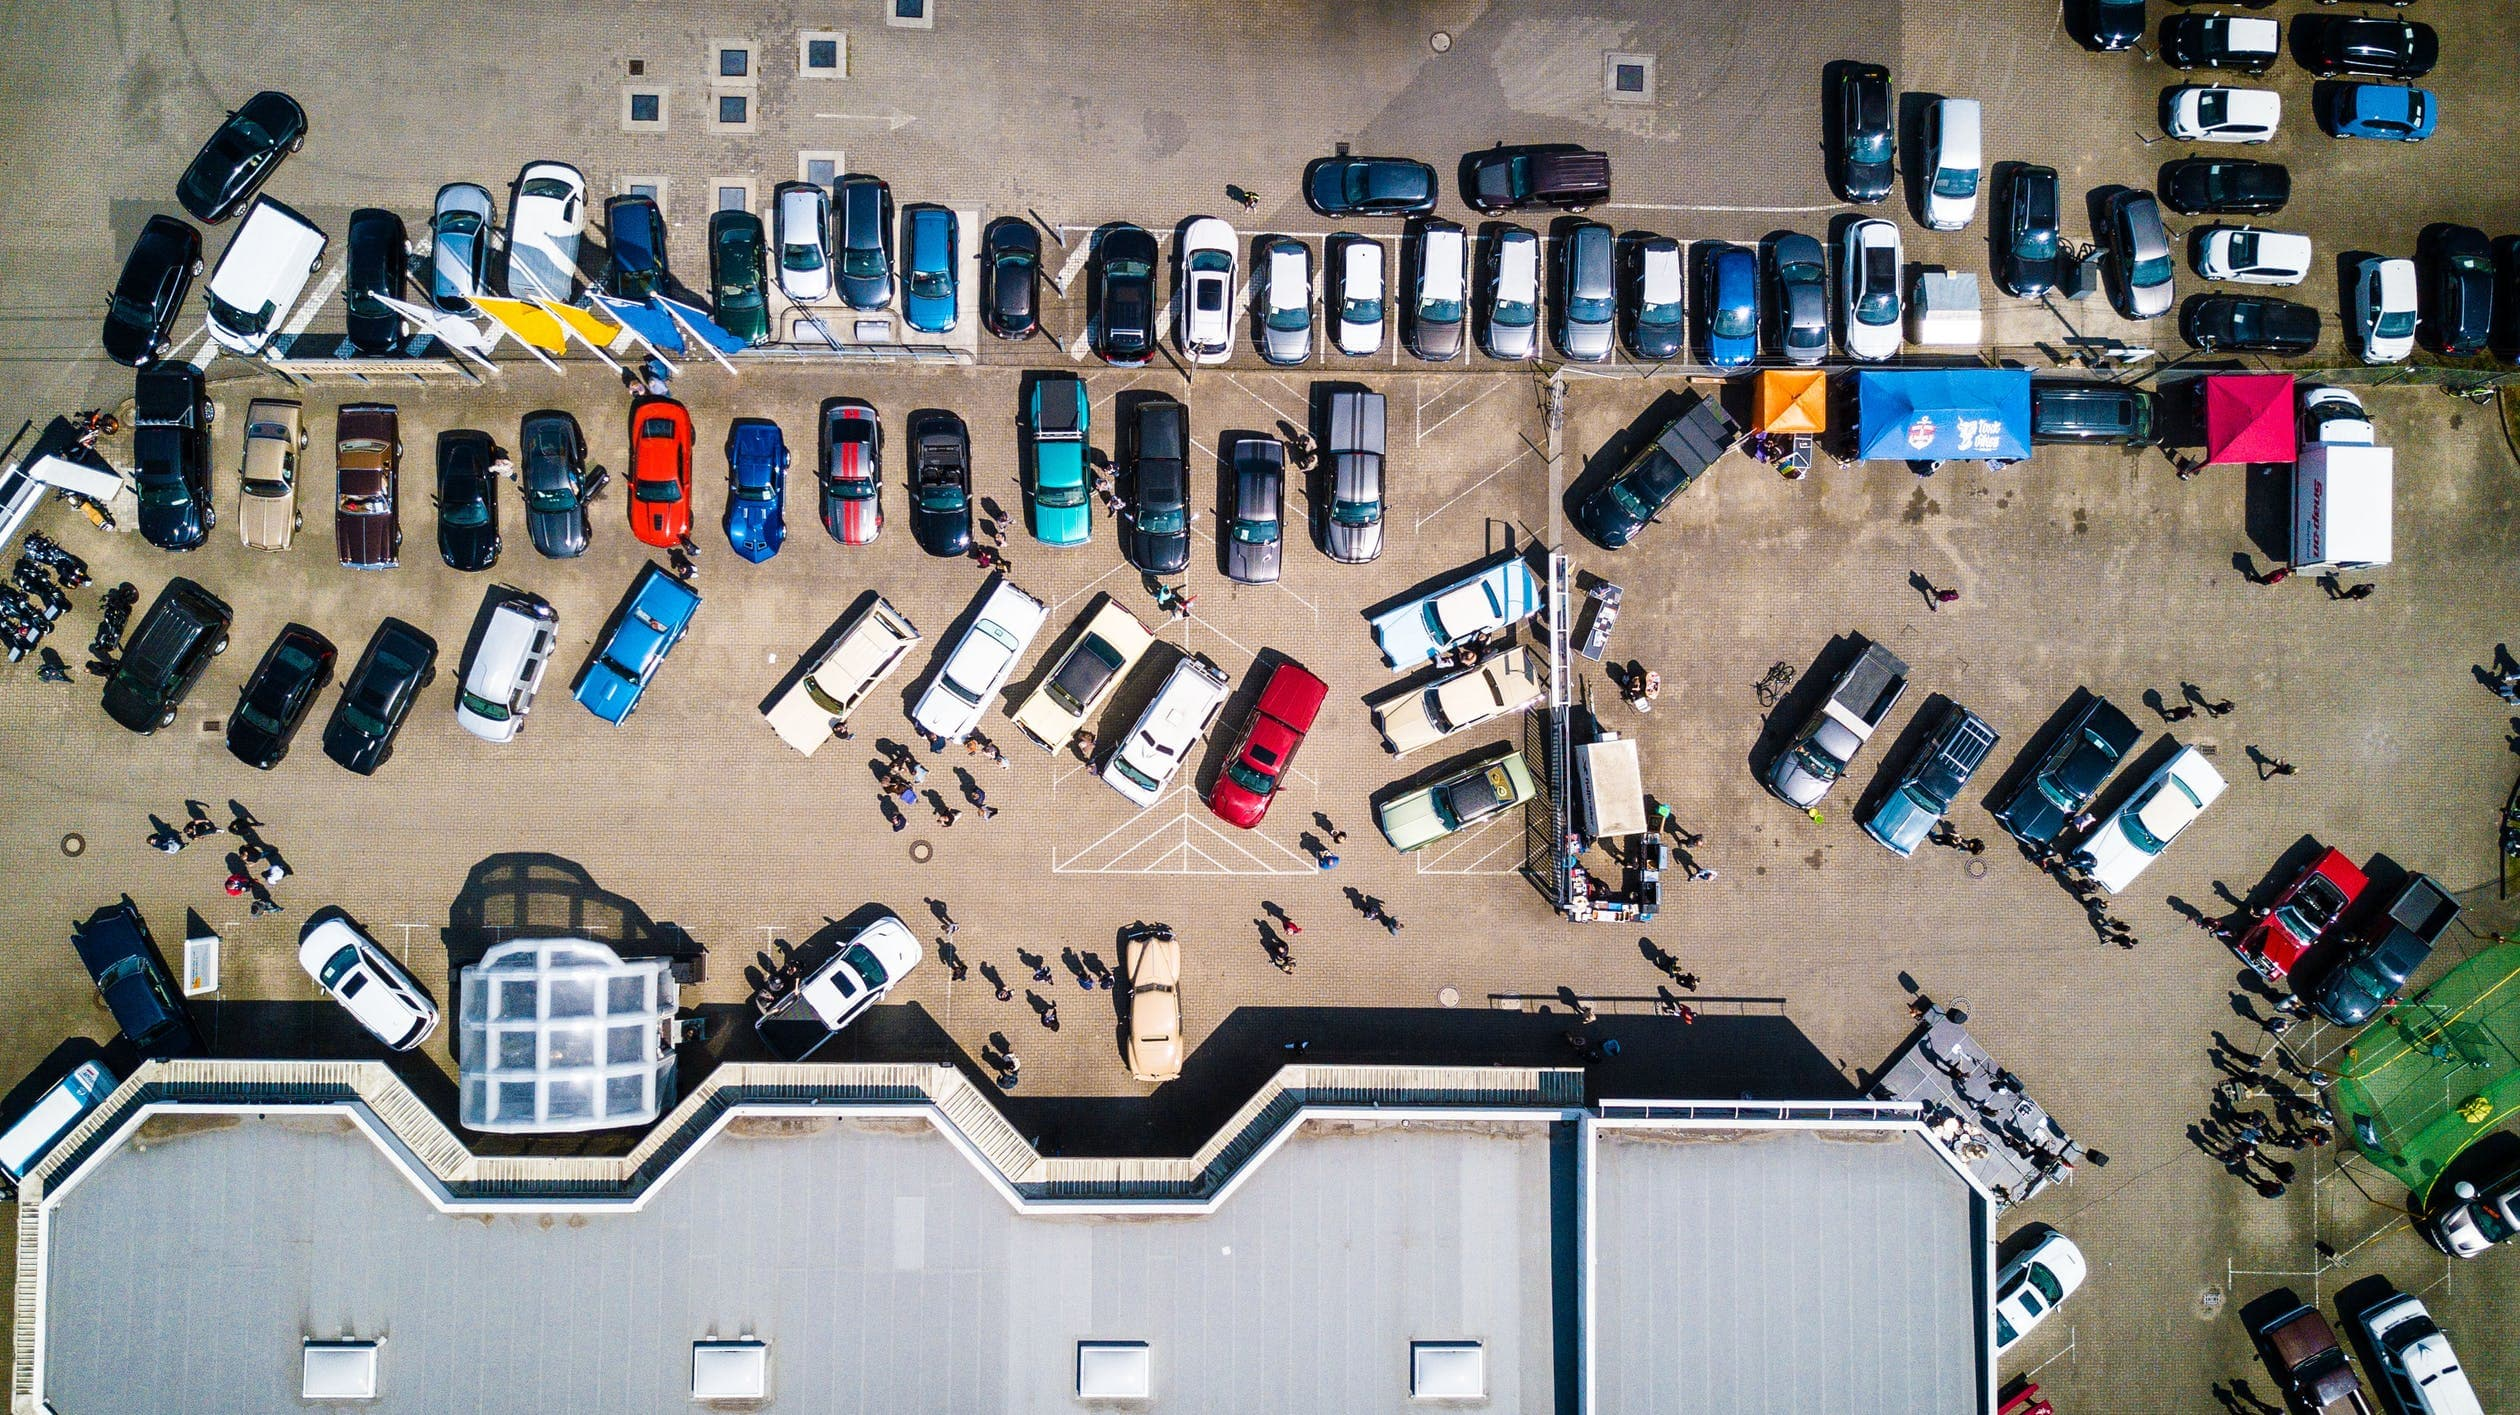 Aerial view of a chaotic parking lot